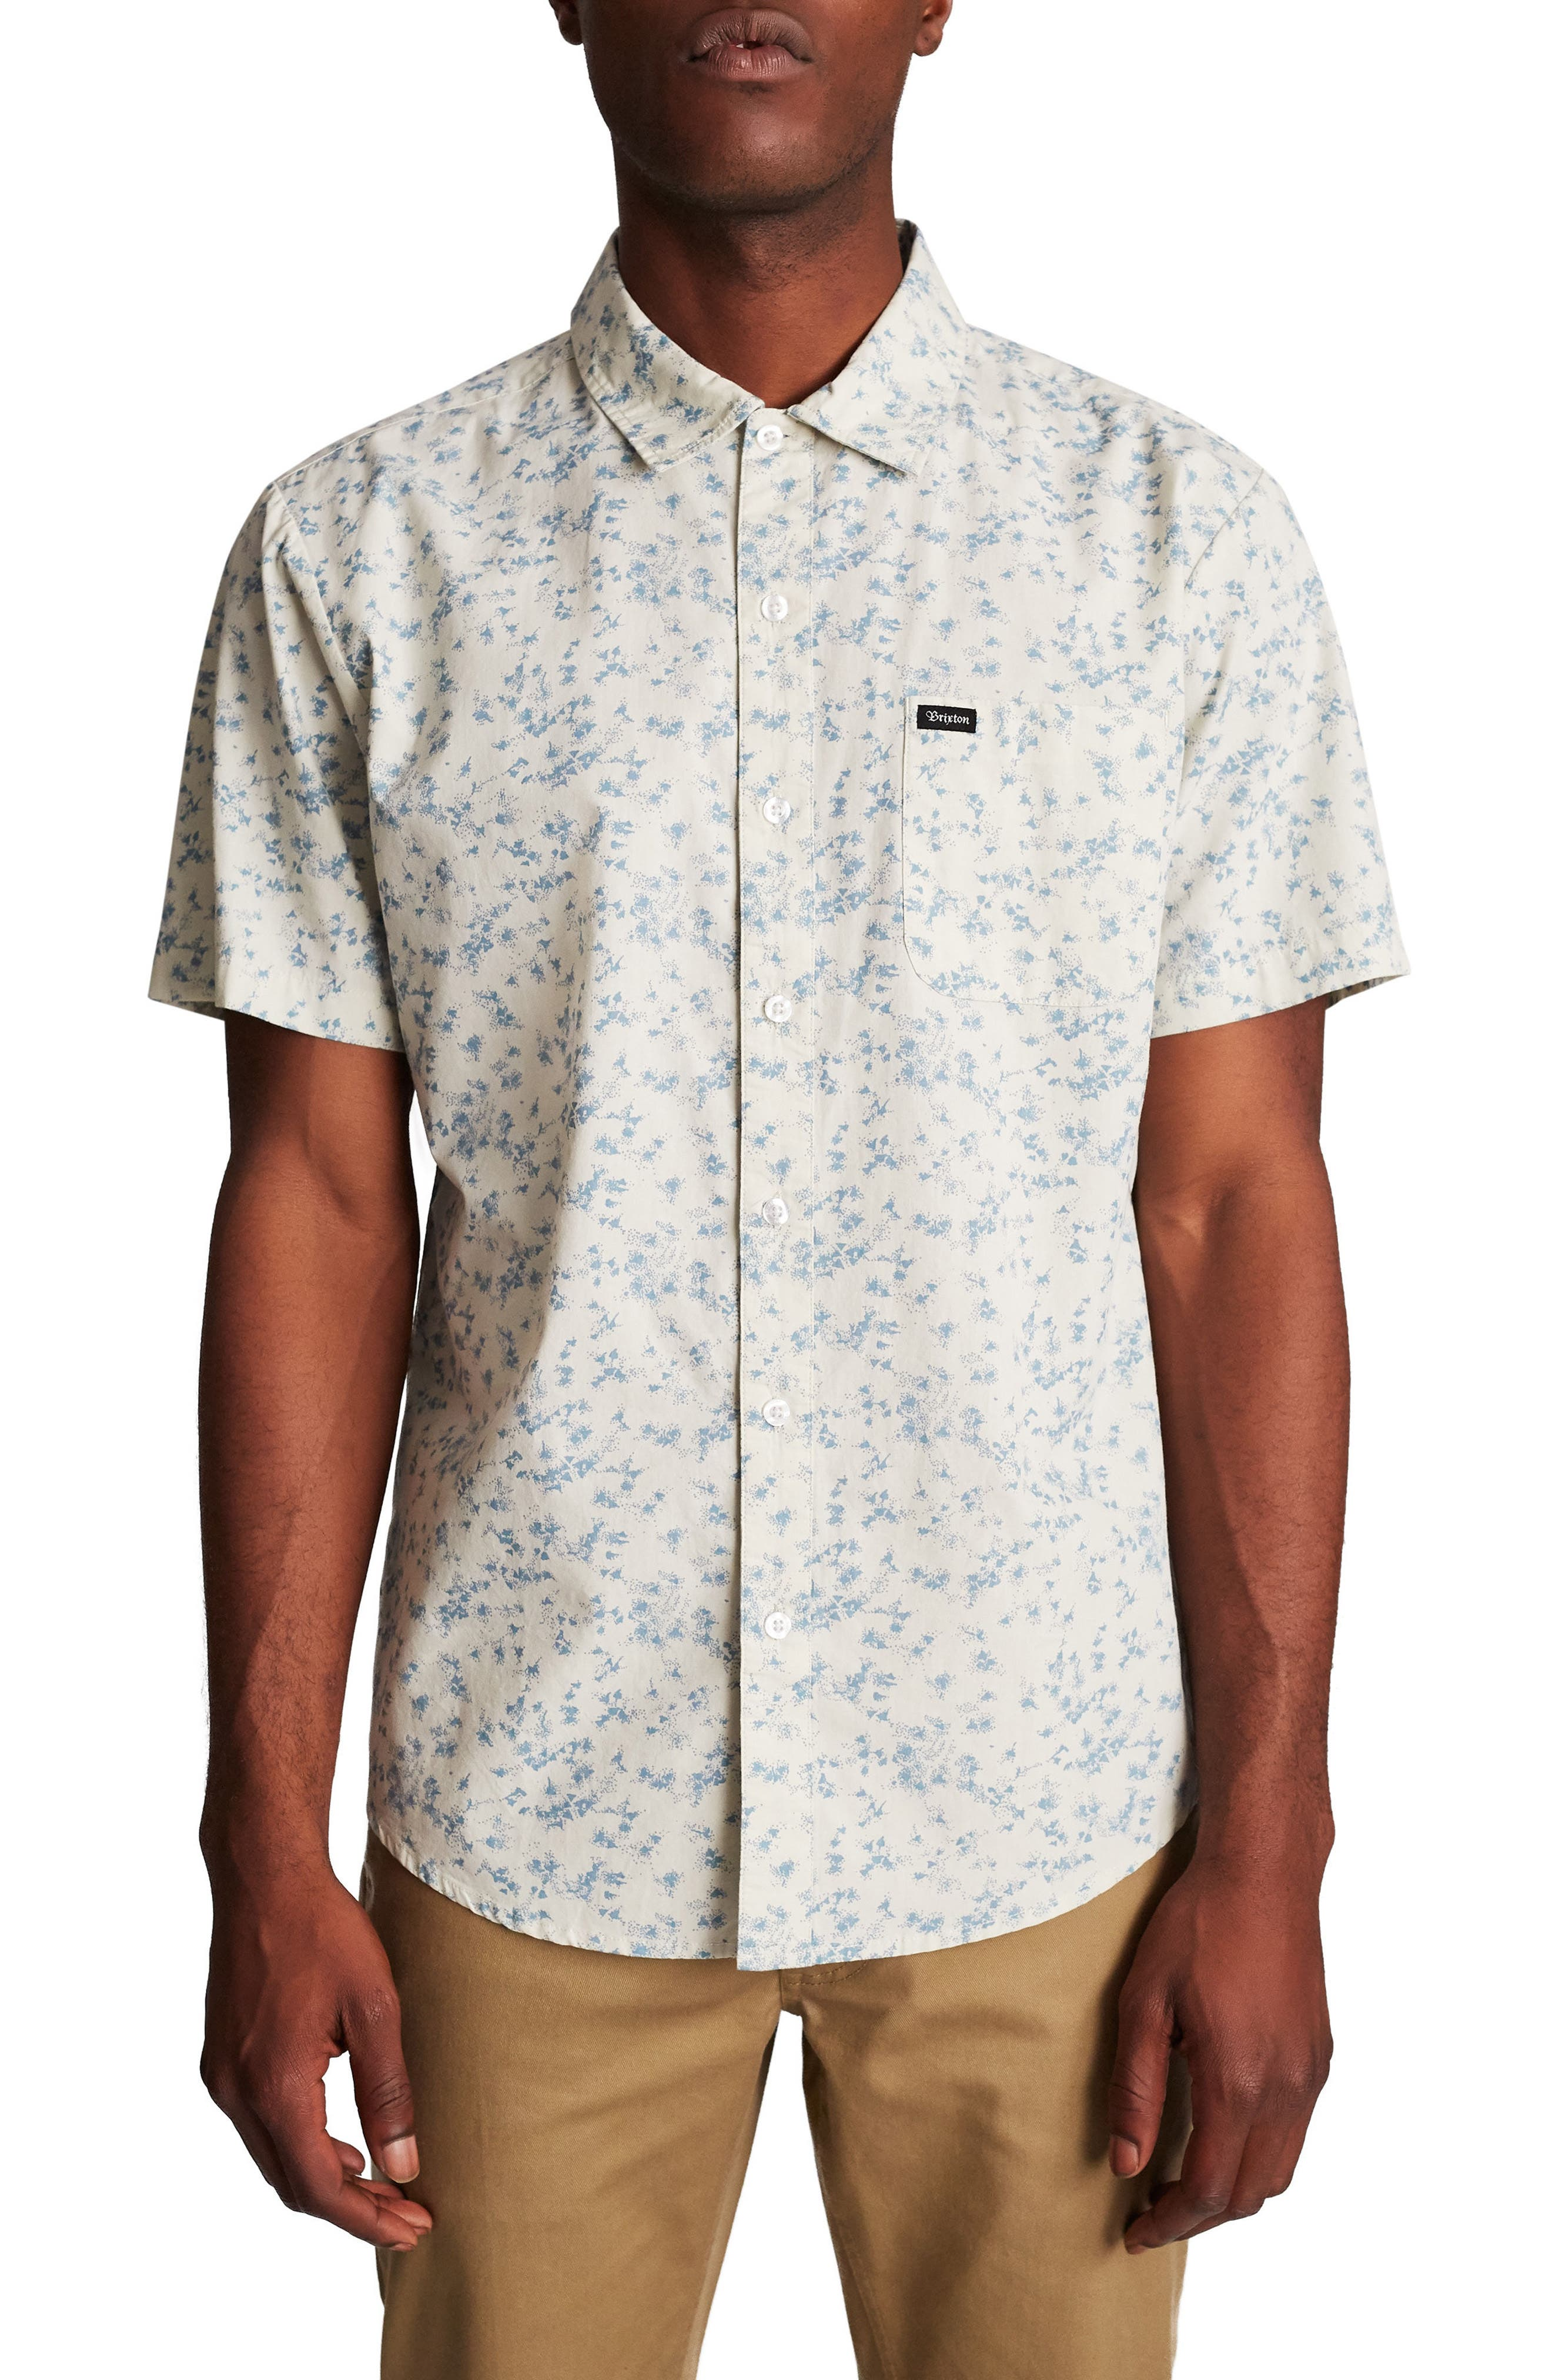 Charter Woven Shirt,                         Main,                         color, Off White/ Dusty Blue